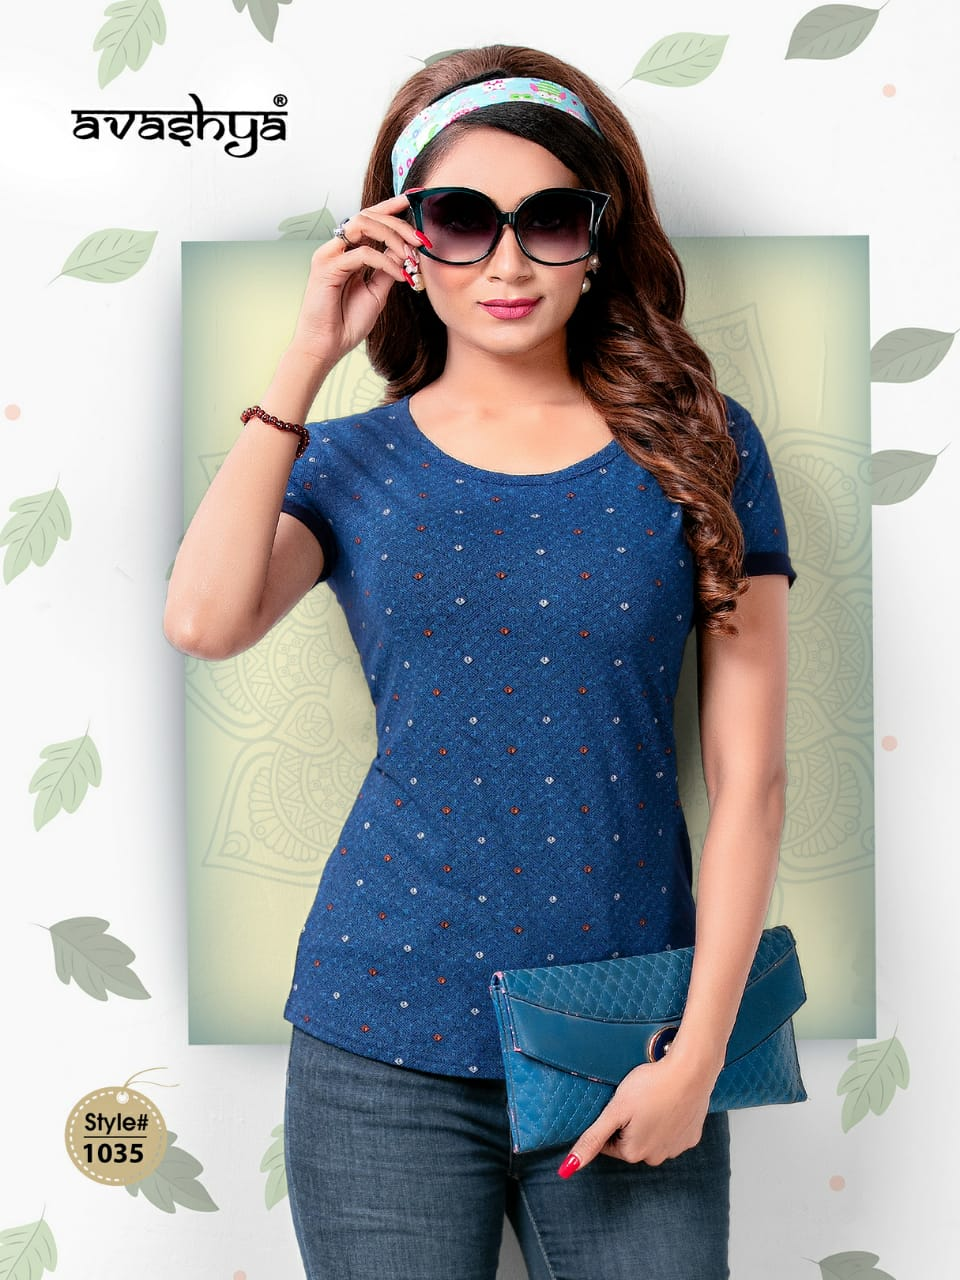 Avashya Retro Vol 54 Half Sleeves T Shirt Wholesale Catalog 6 Pcs 6 1 - Avashya Retro Vol 54 Half Sleeves T-Shirt Wholesale Catalog 6 Pcs